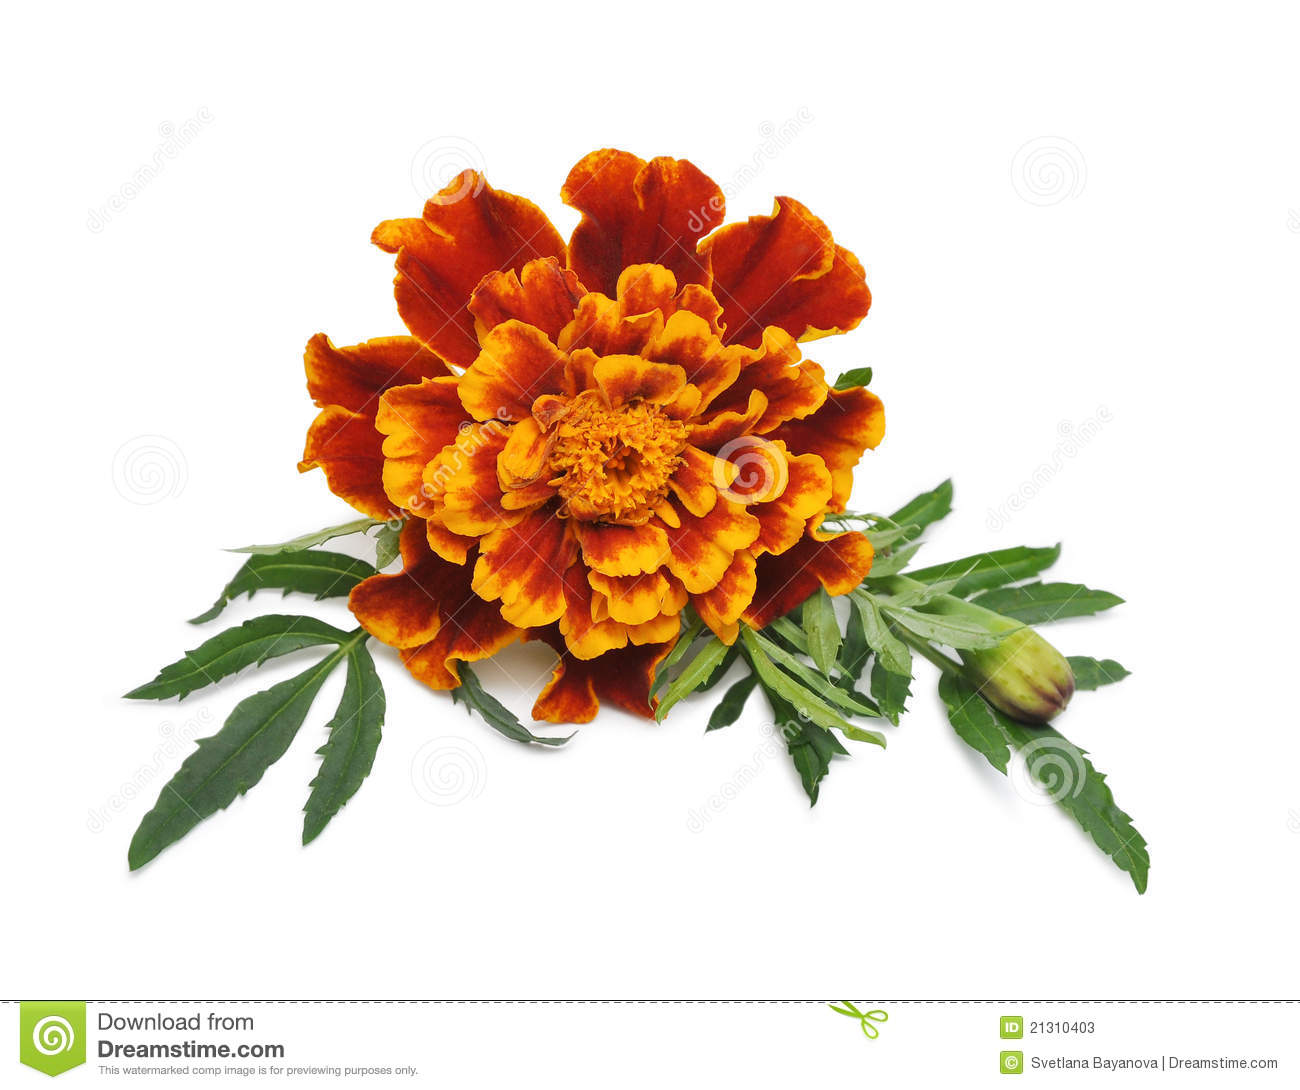 how to draw a marigold